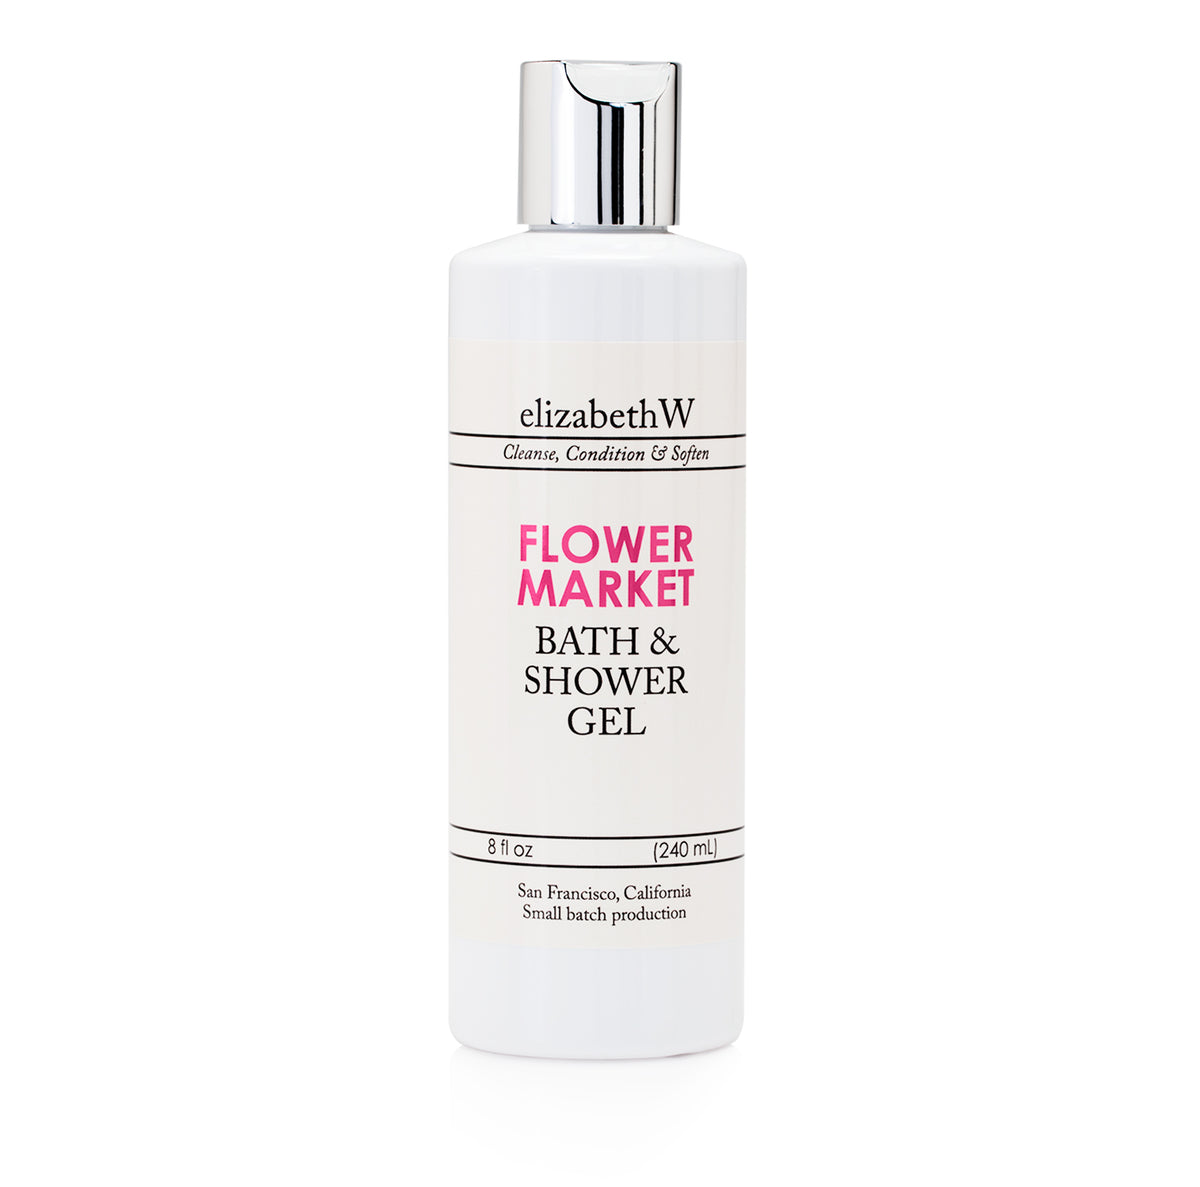 Flower Market Bath & Shower Gel